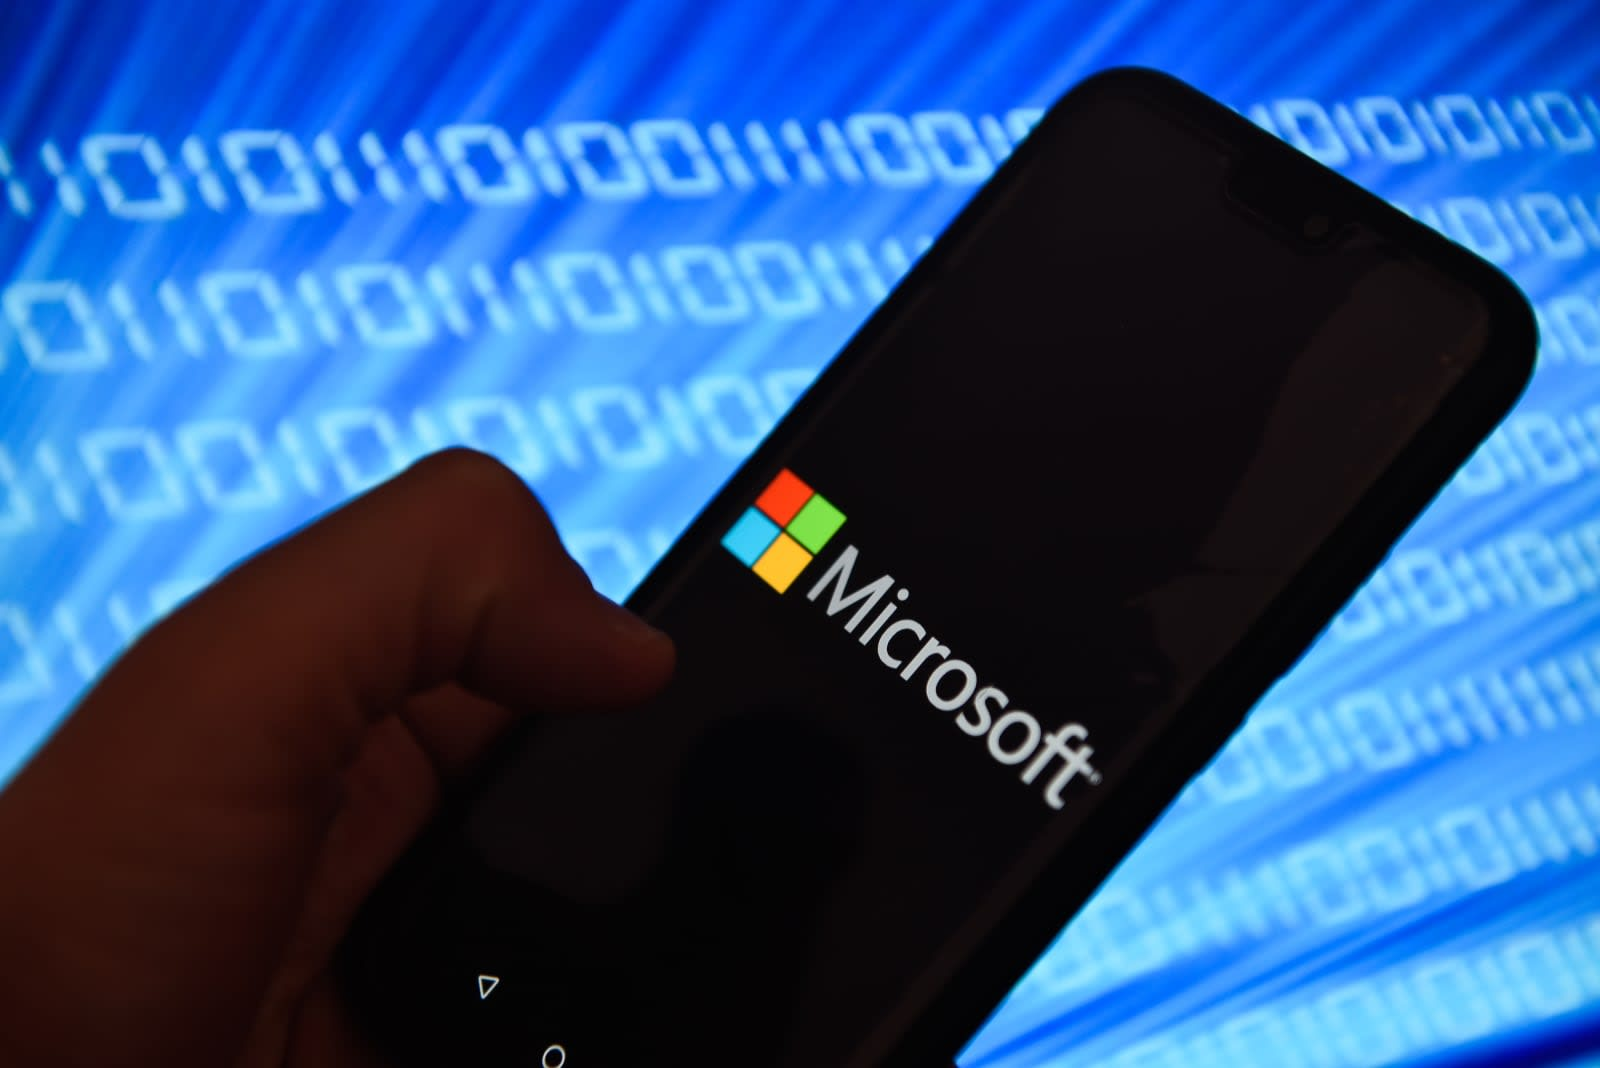 Microsoft knows password-expiration policies are useless